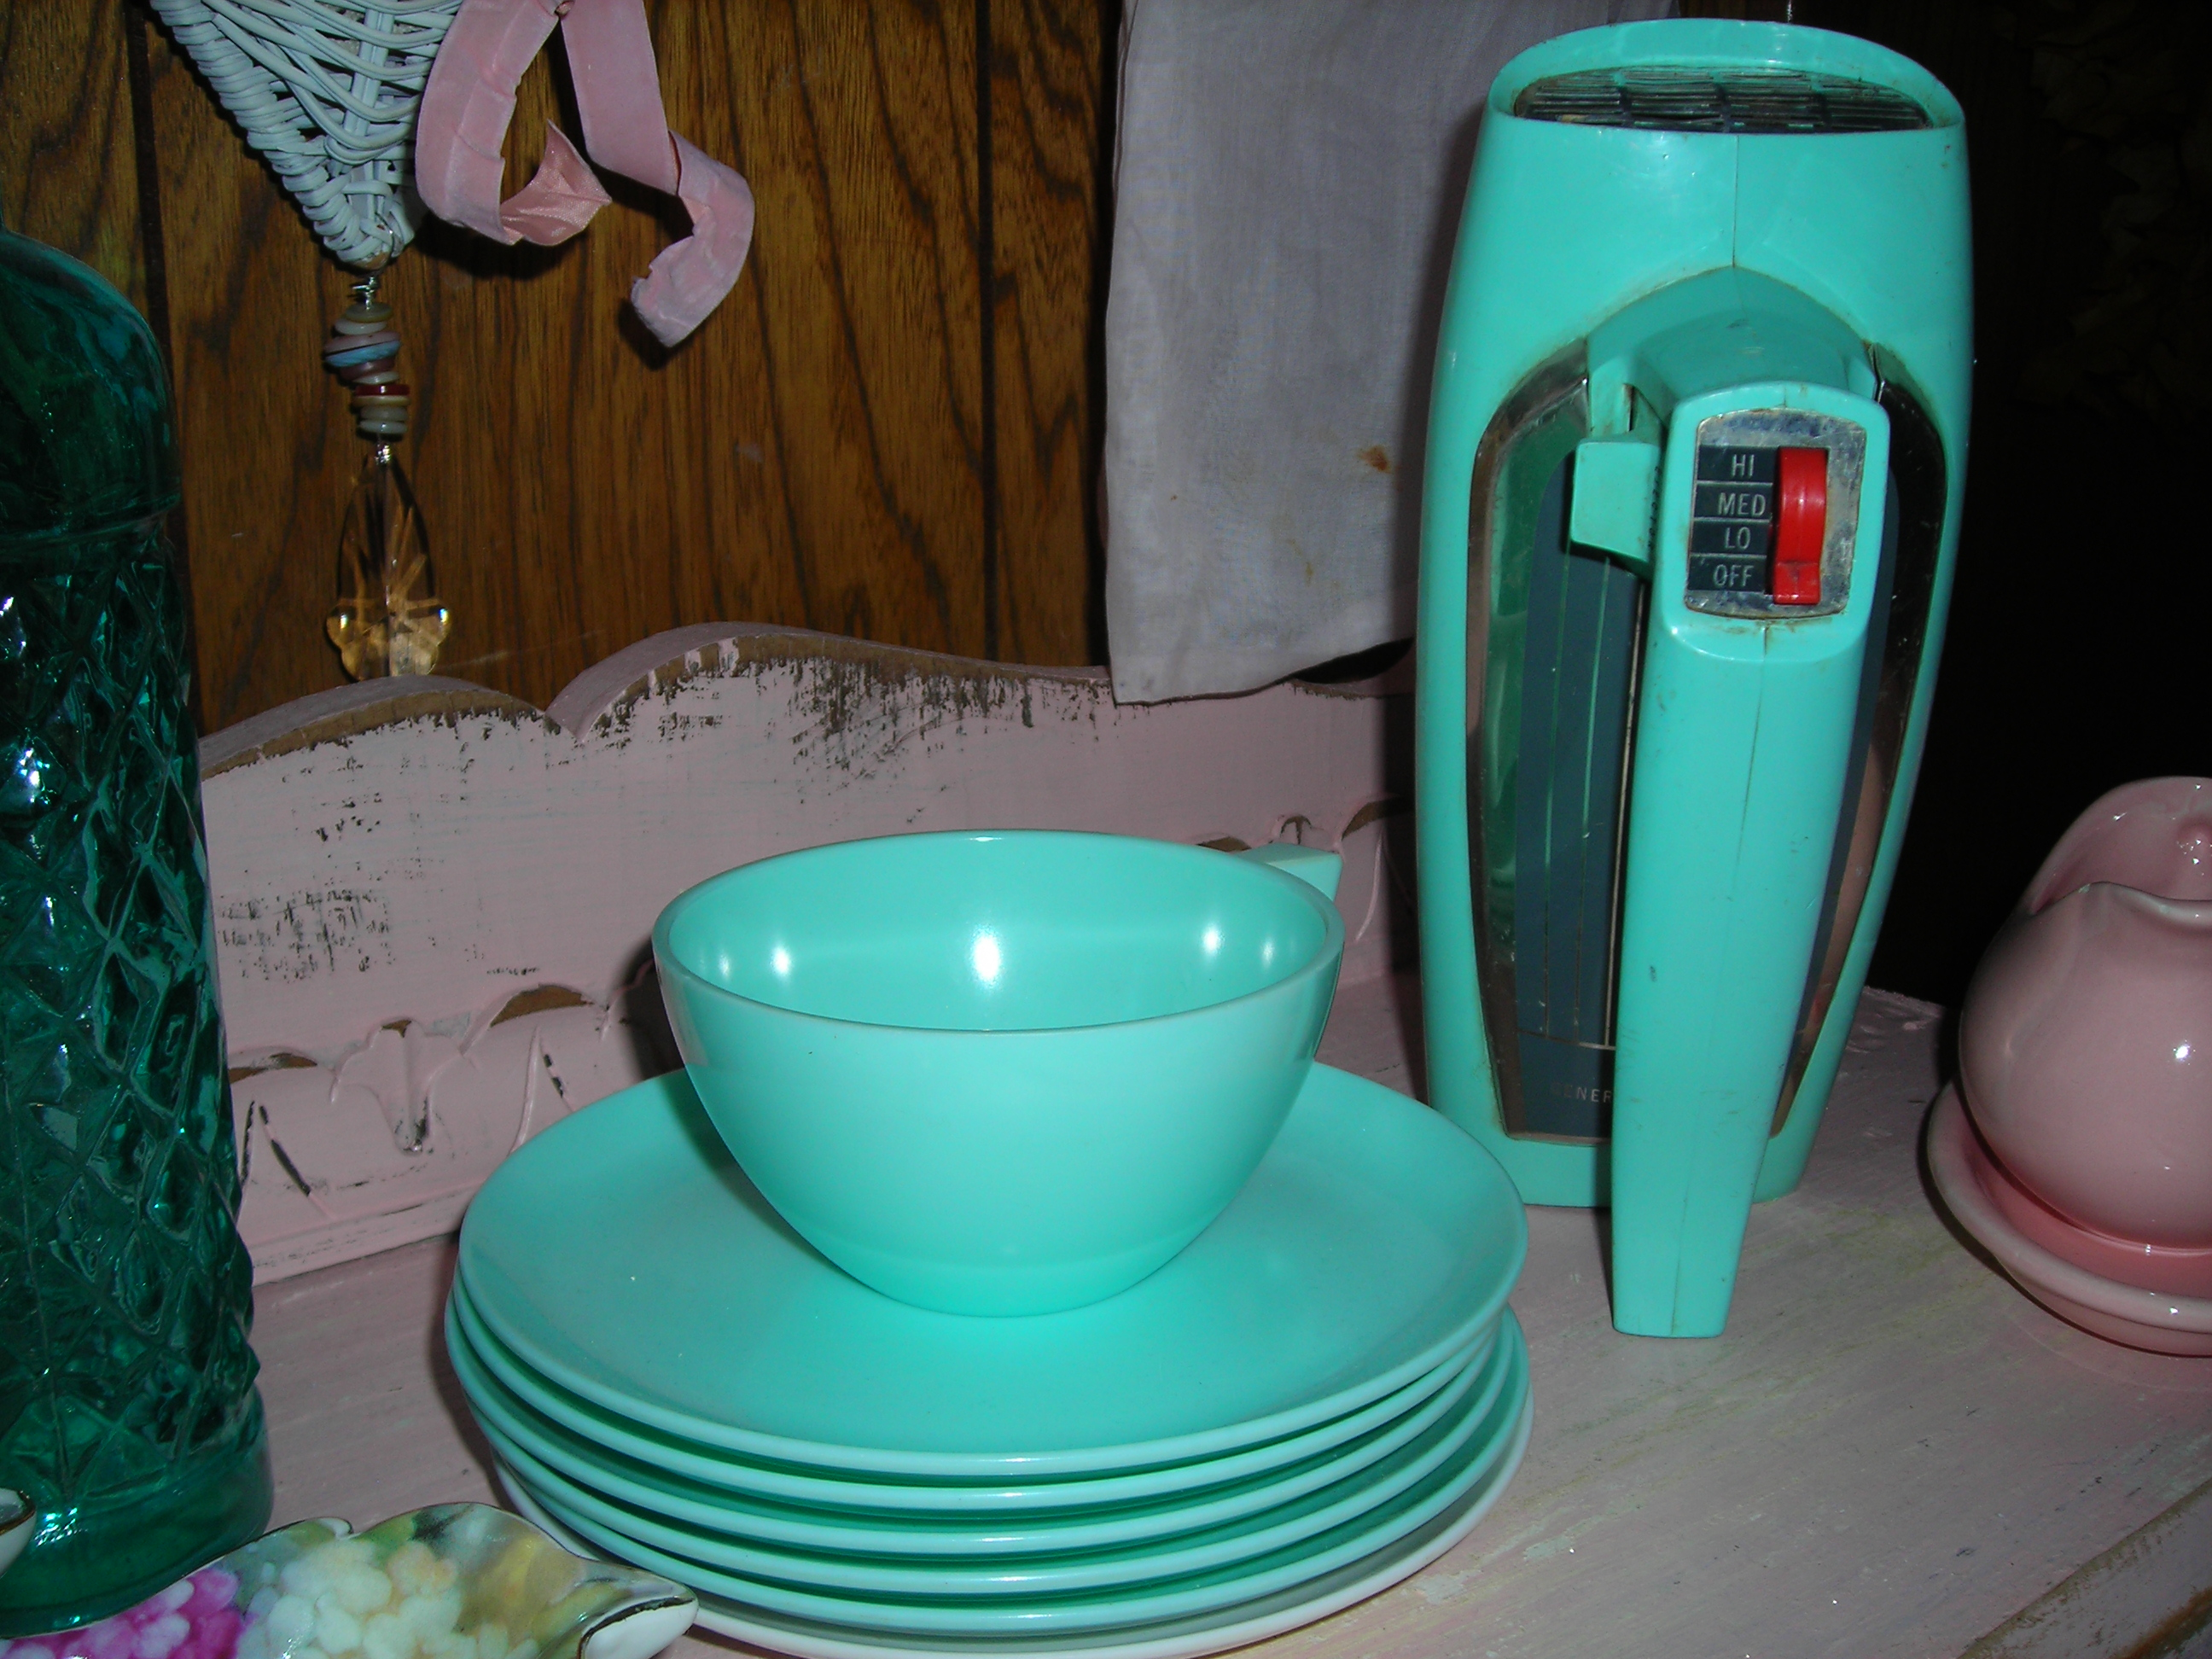 also found this great retro GE hand mixer at the GW barn. love that turquoise!!